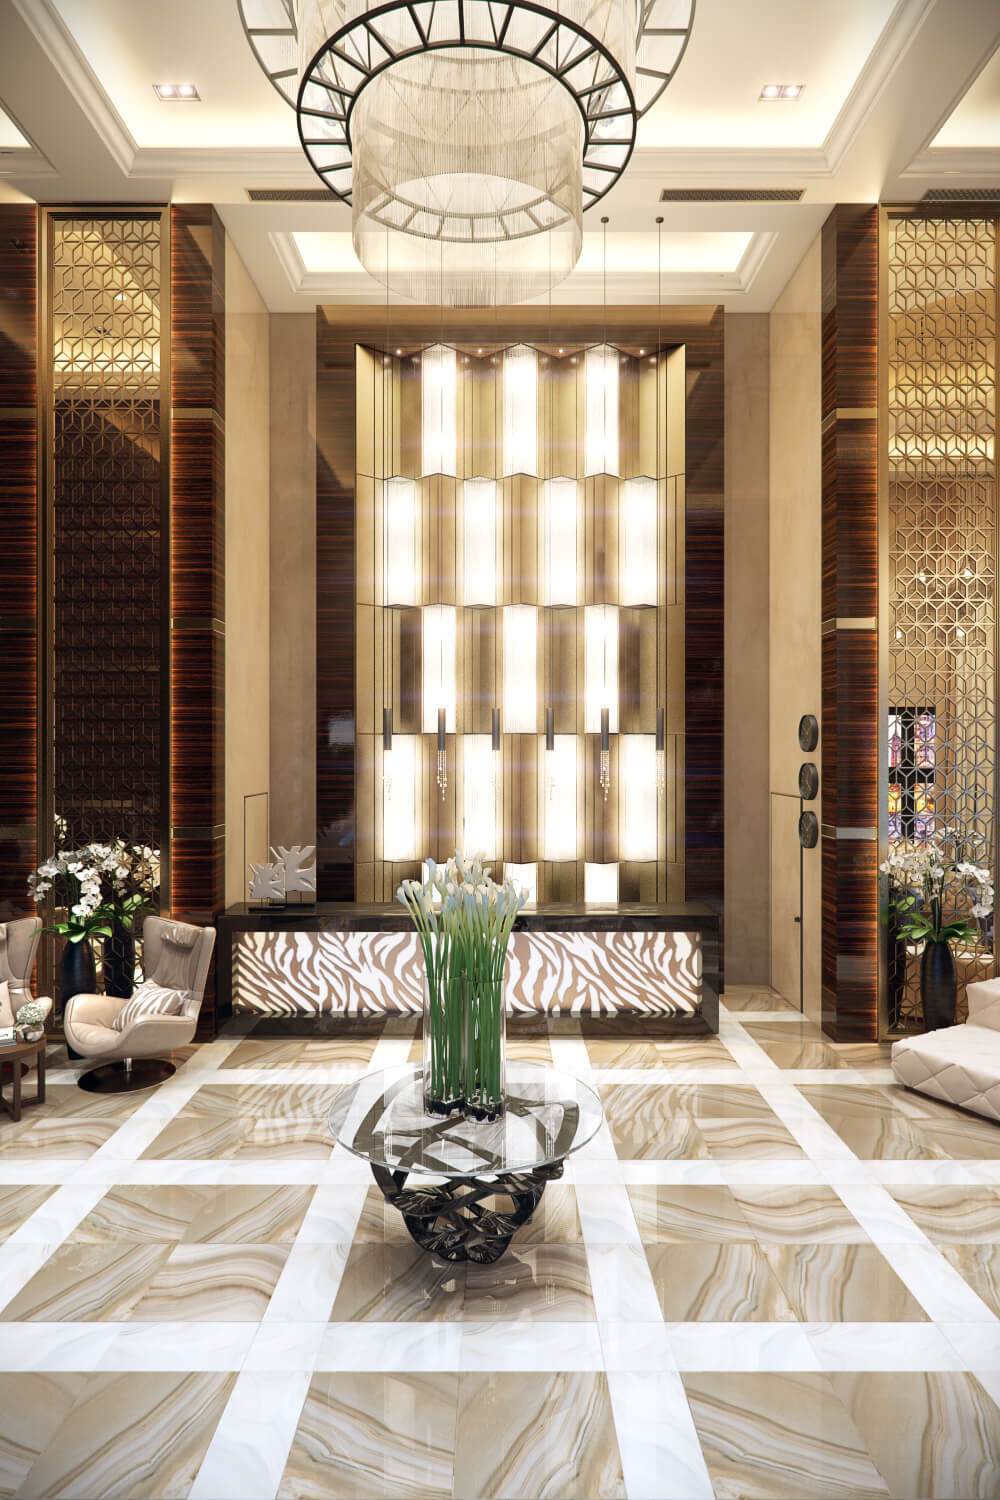 Interior Design Rendering for a Sublime Hotel Lobby on Behance